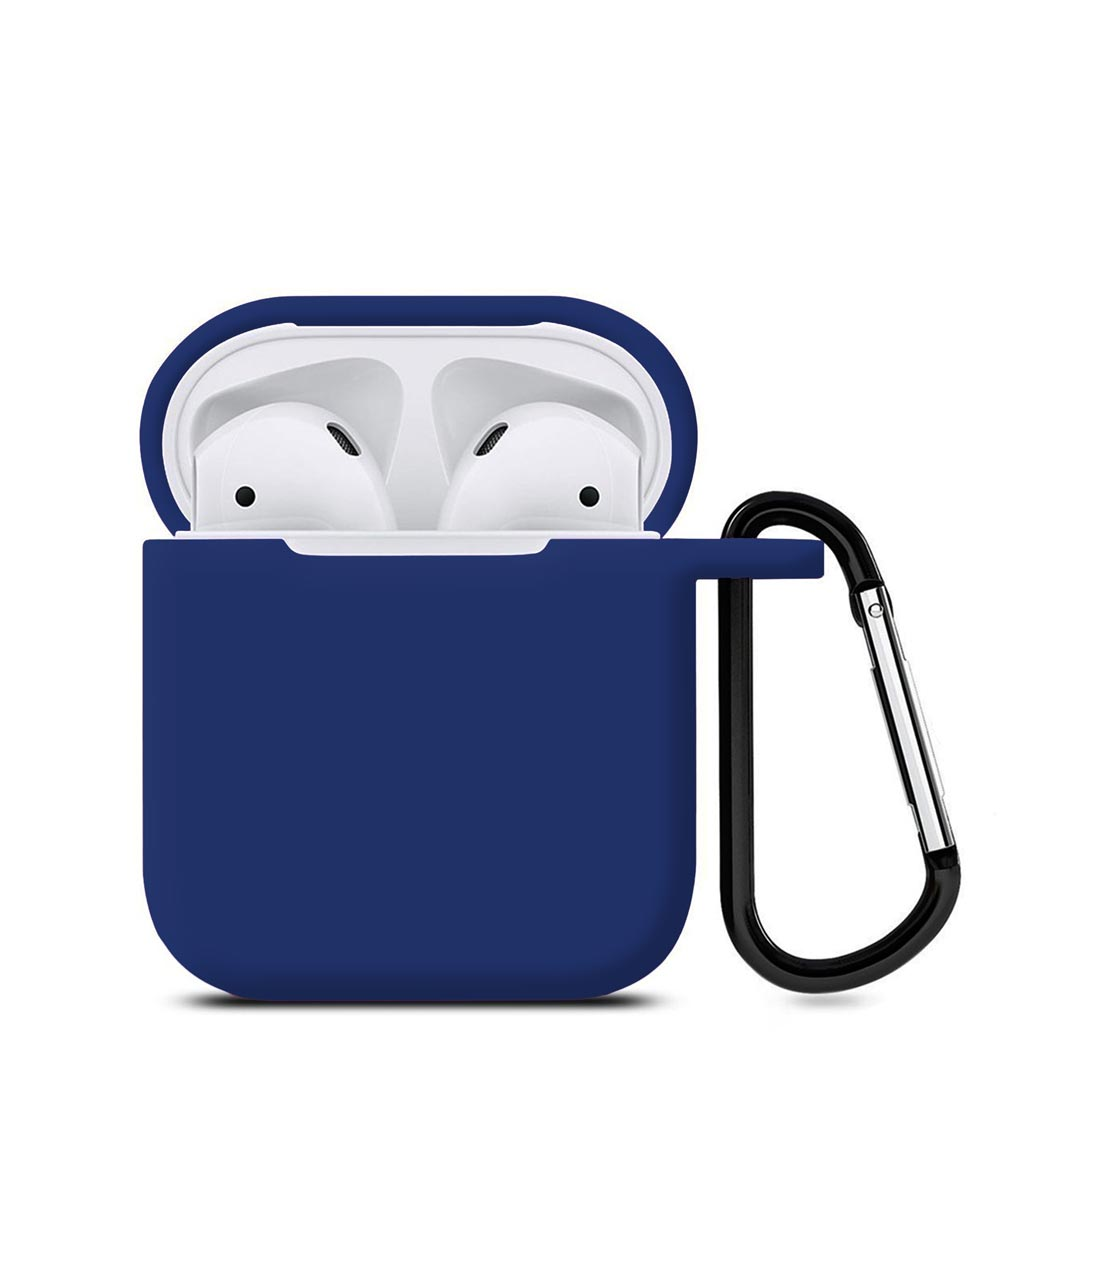 Silicone Case Navy Blue - AirPods Case